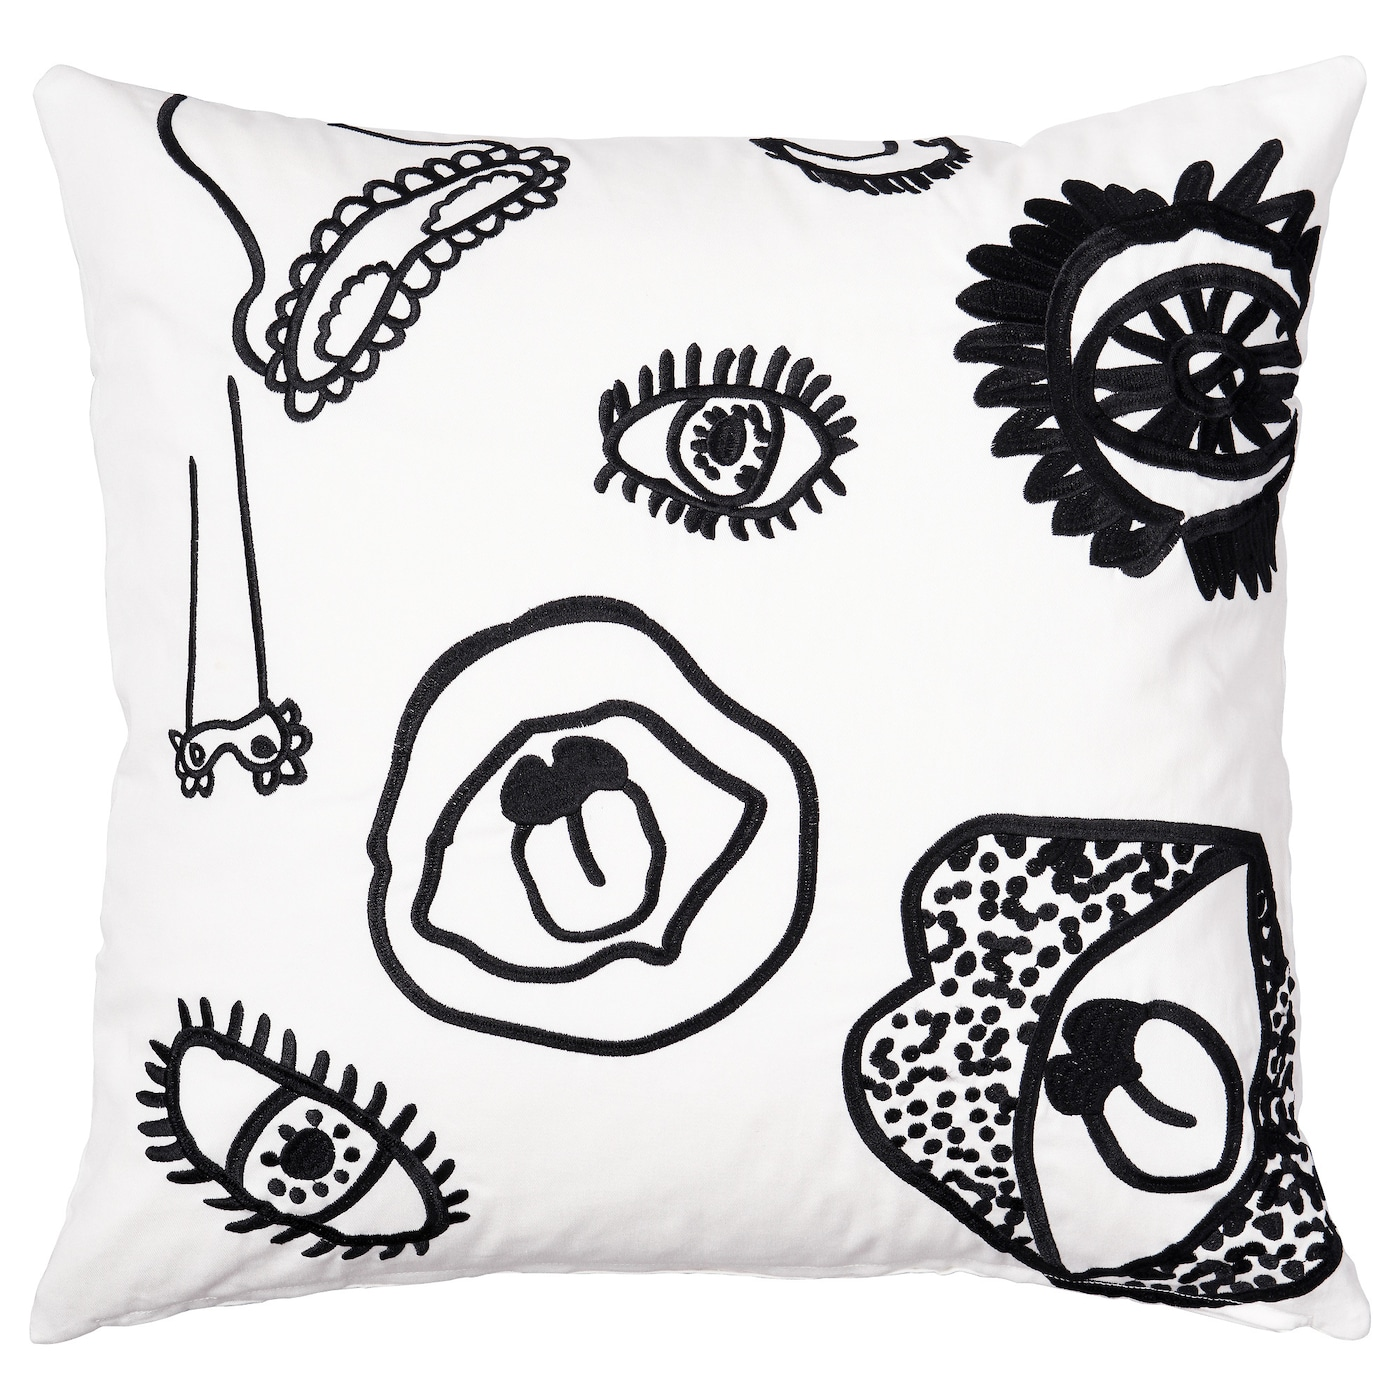 IKEA SPRIDD cushion cover Embroidery adds texture and lustre to the cushion.